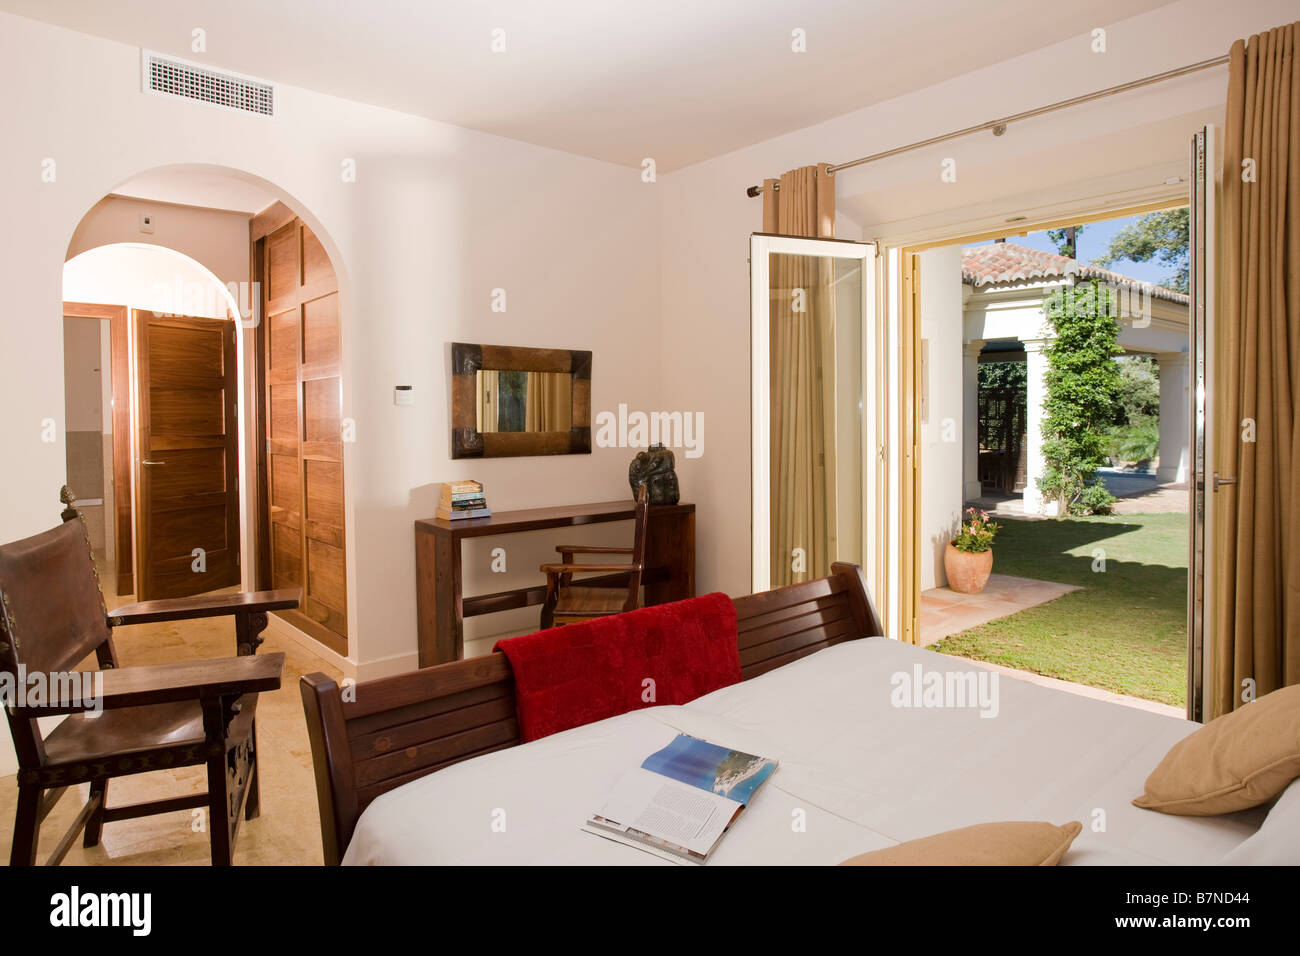 Simple Furniture In Modern Bedroom In Spanish Holiday Apartment With Patio  Doors To The Garden